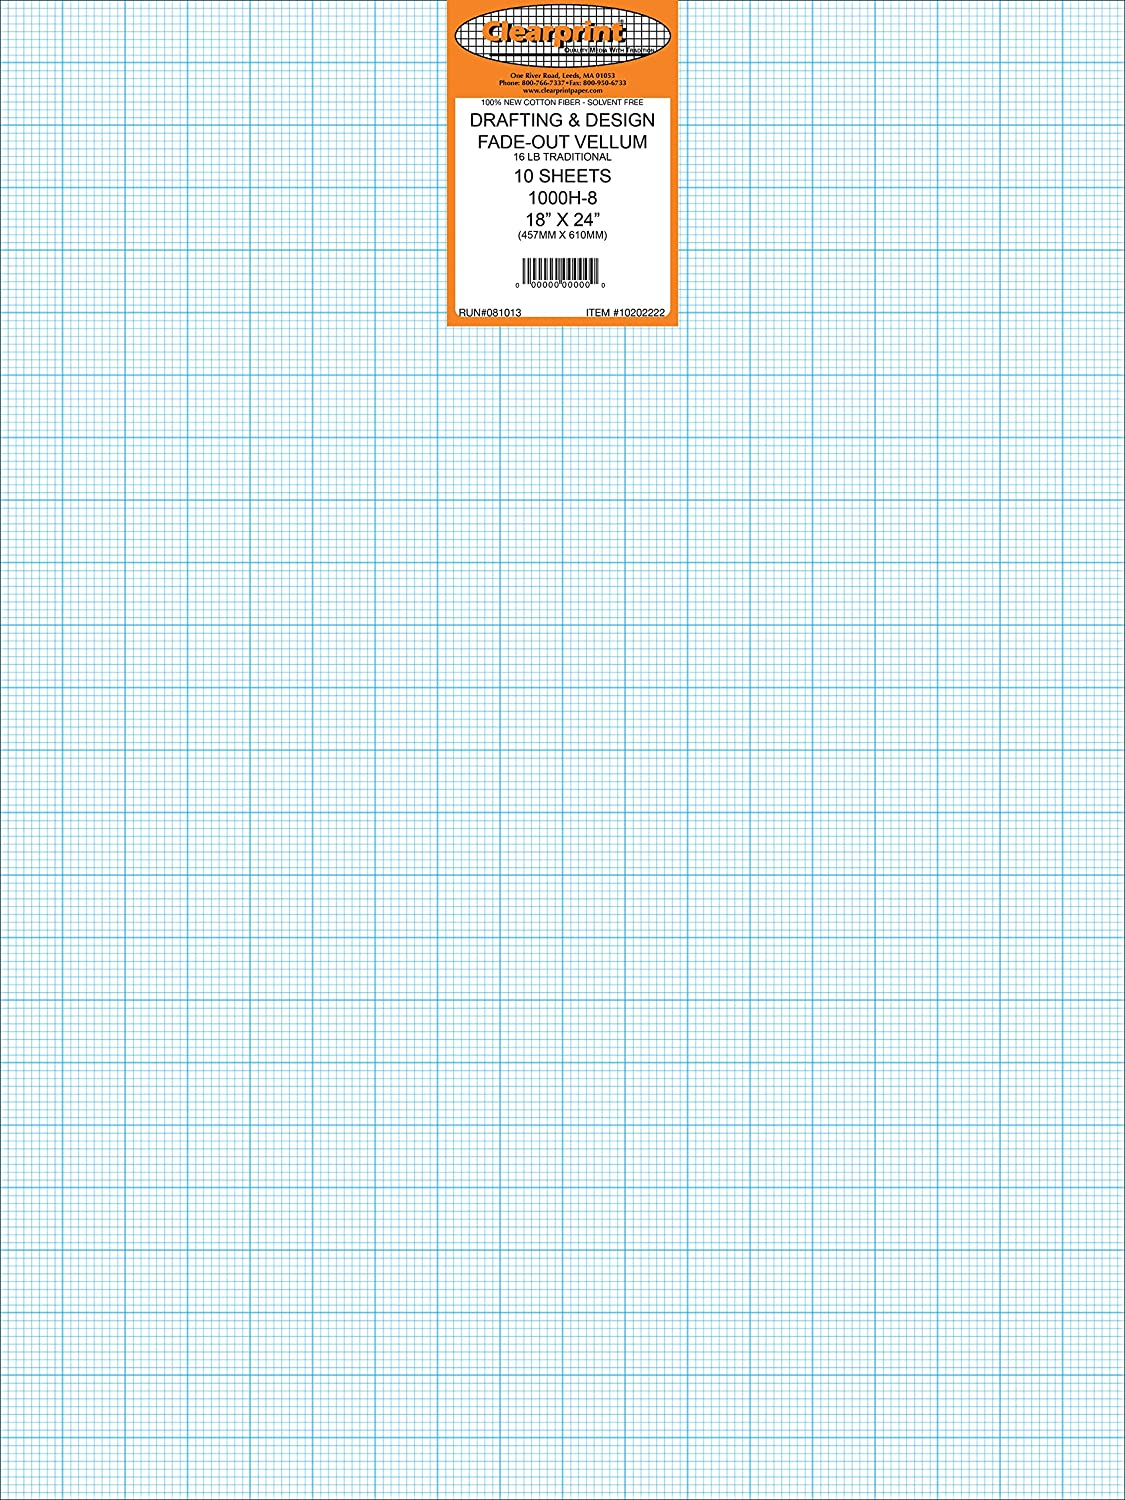 24 x 36 Inches 16 lb Clearprint 1000H Design Vellum Sheets with Printed Fade-Out 8x8 Grid 10202228 100/% Cotton 10 Sheets//Pack Translucent White